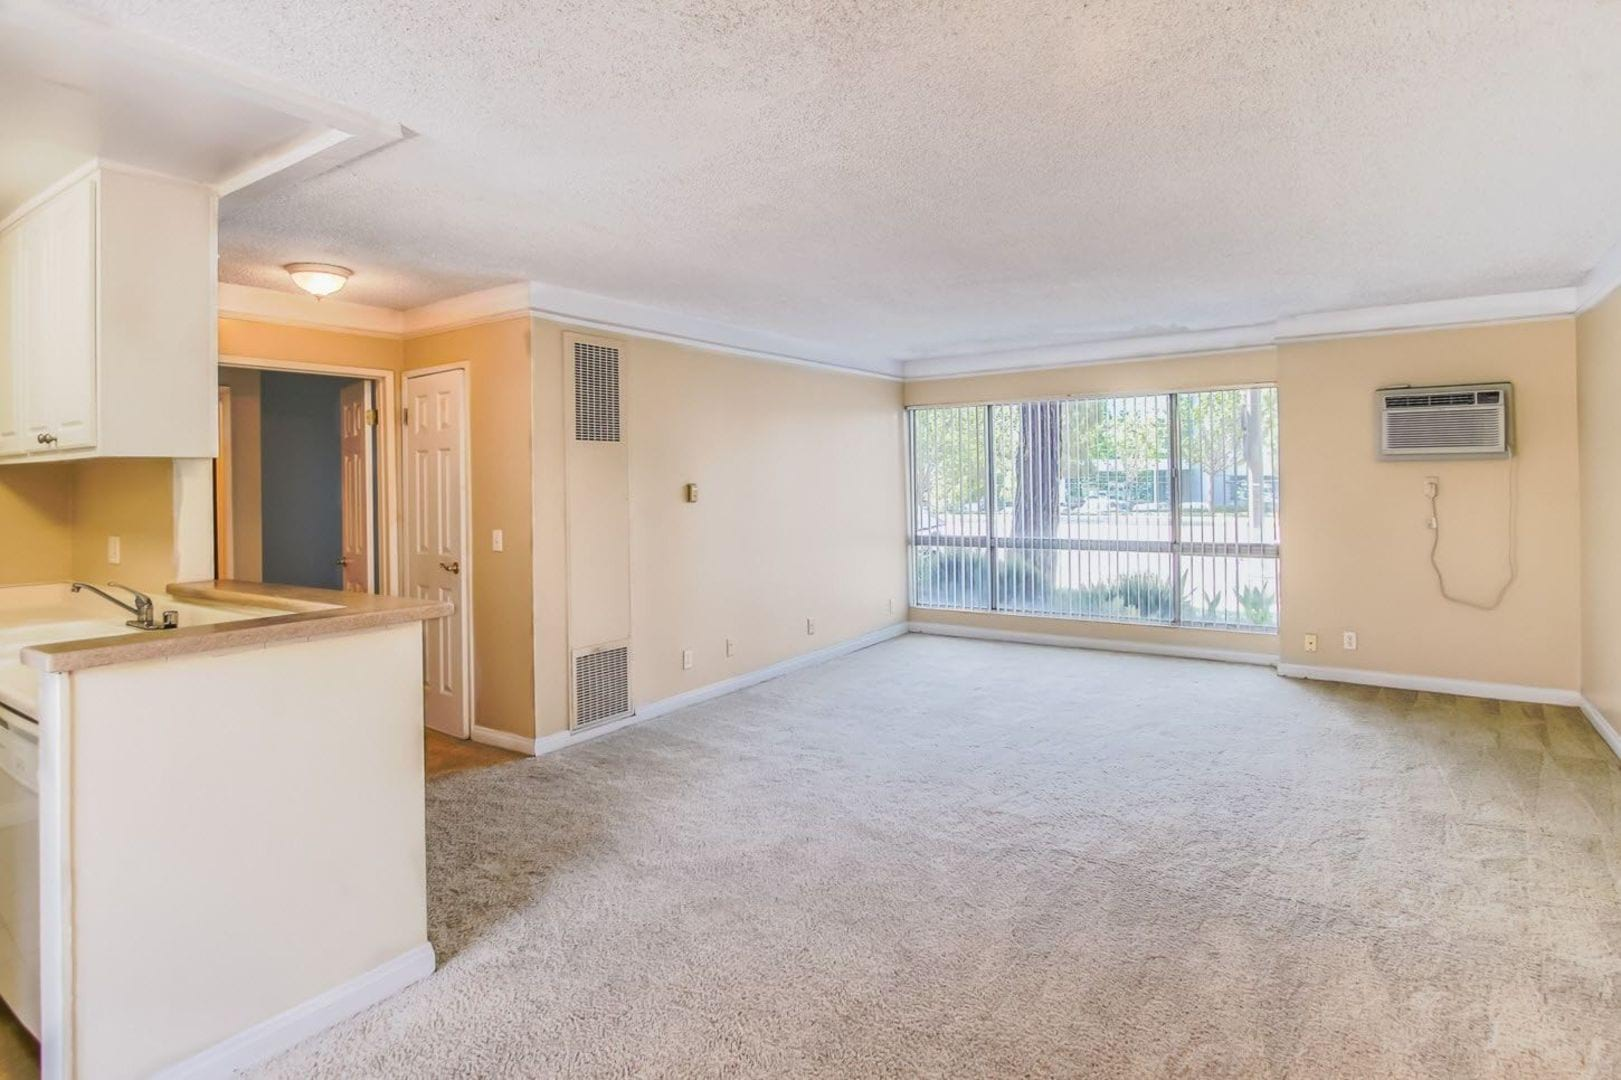 Apartments For Rent In Northridge Ca Cambridge On